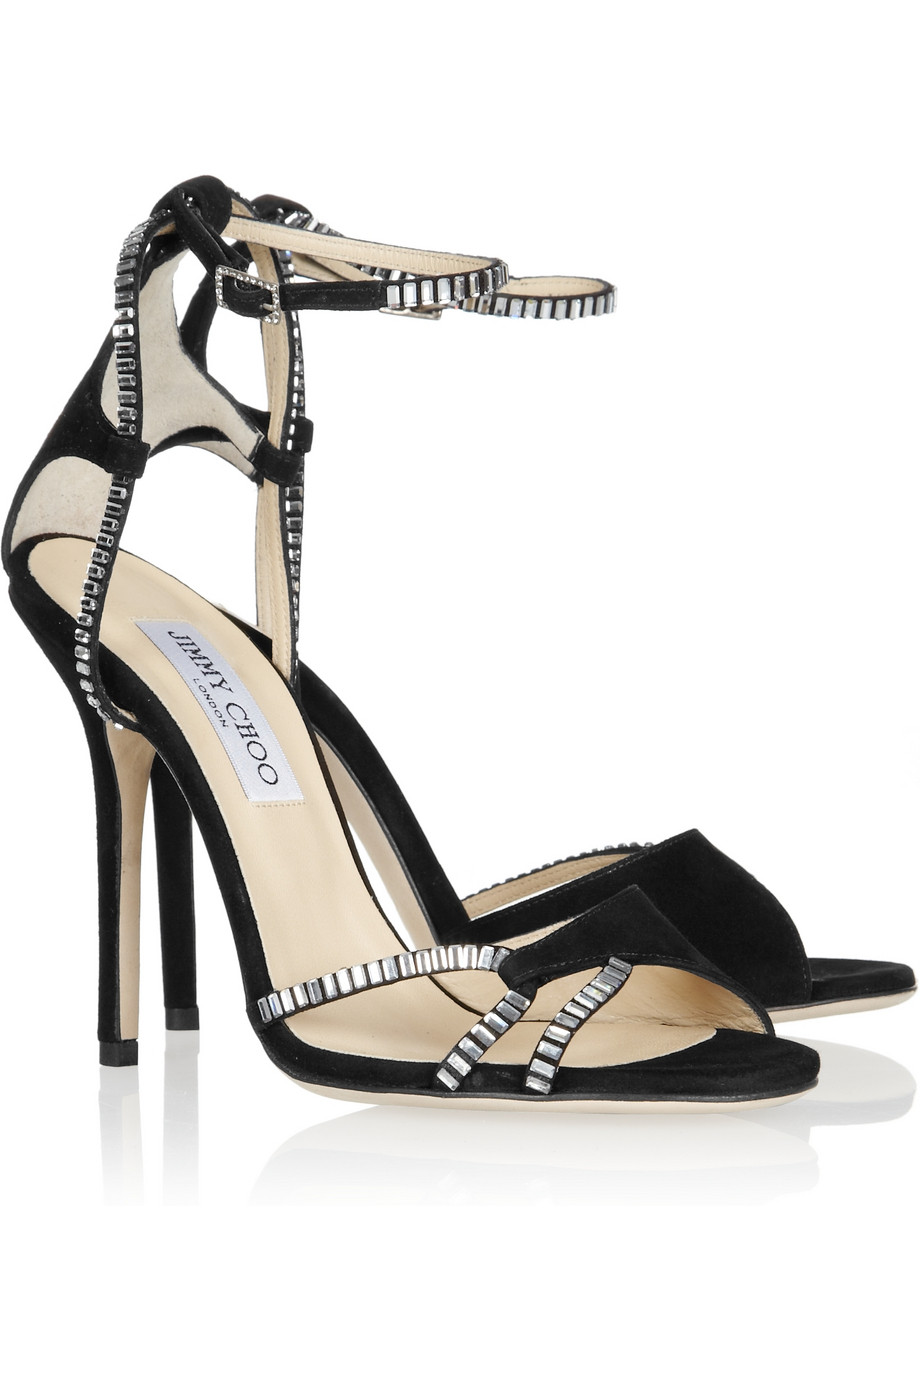 3490af66ad43 Jimmy Choo Morgan Crystalembellished Suede Sandals in Black - Lyst